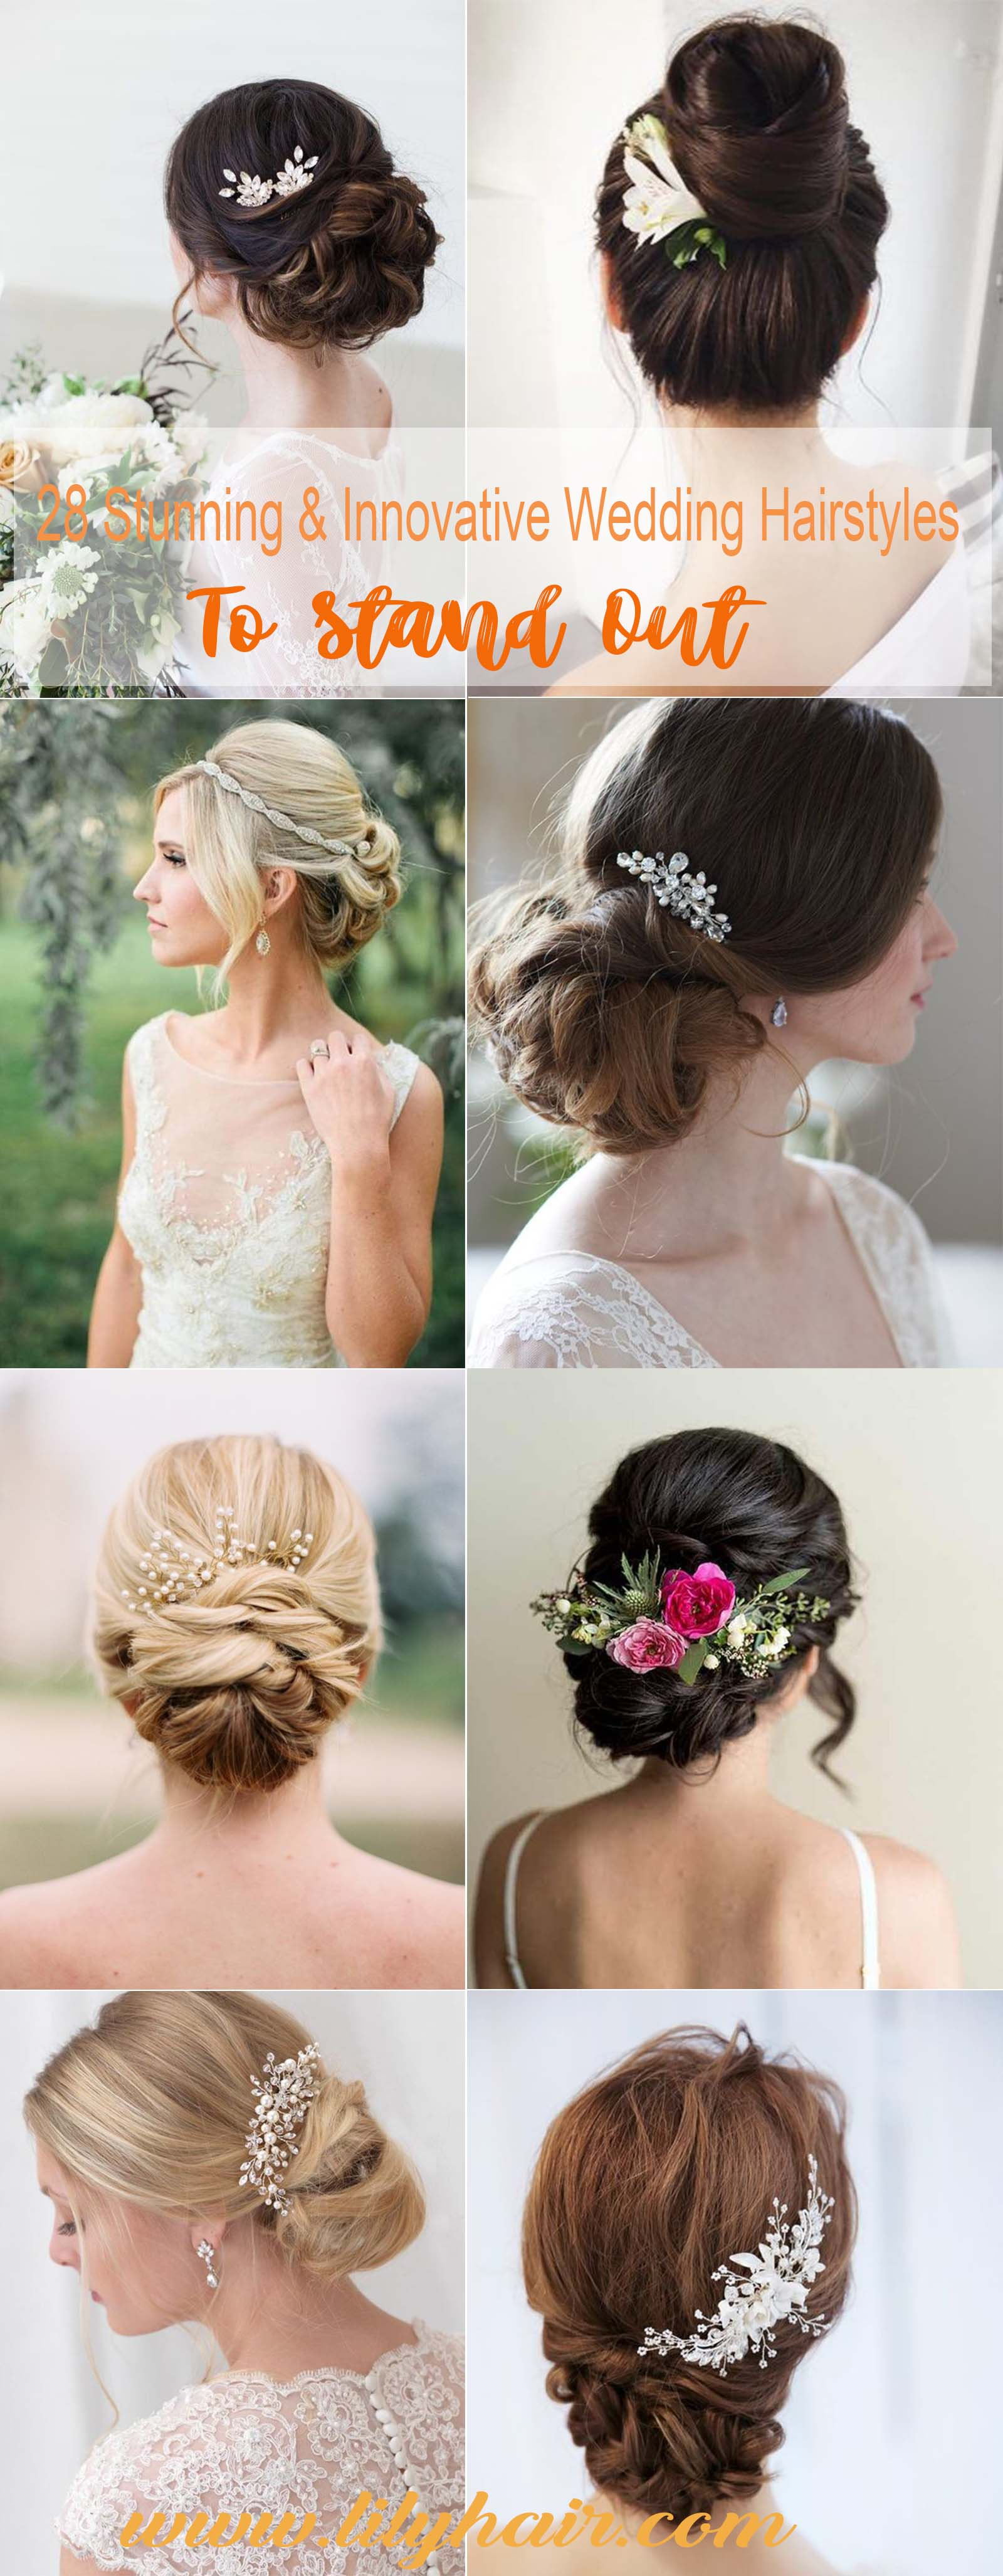 Charming Braided Updos for Bridal Hairstyles